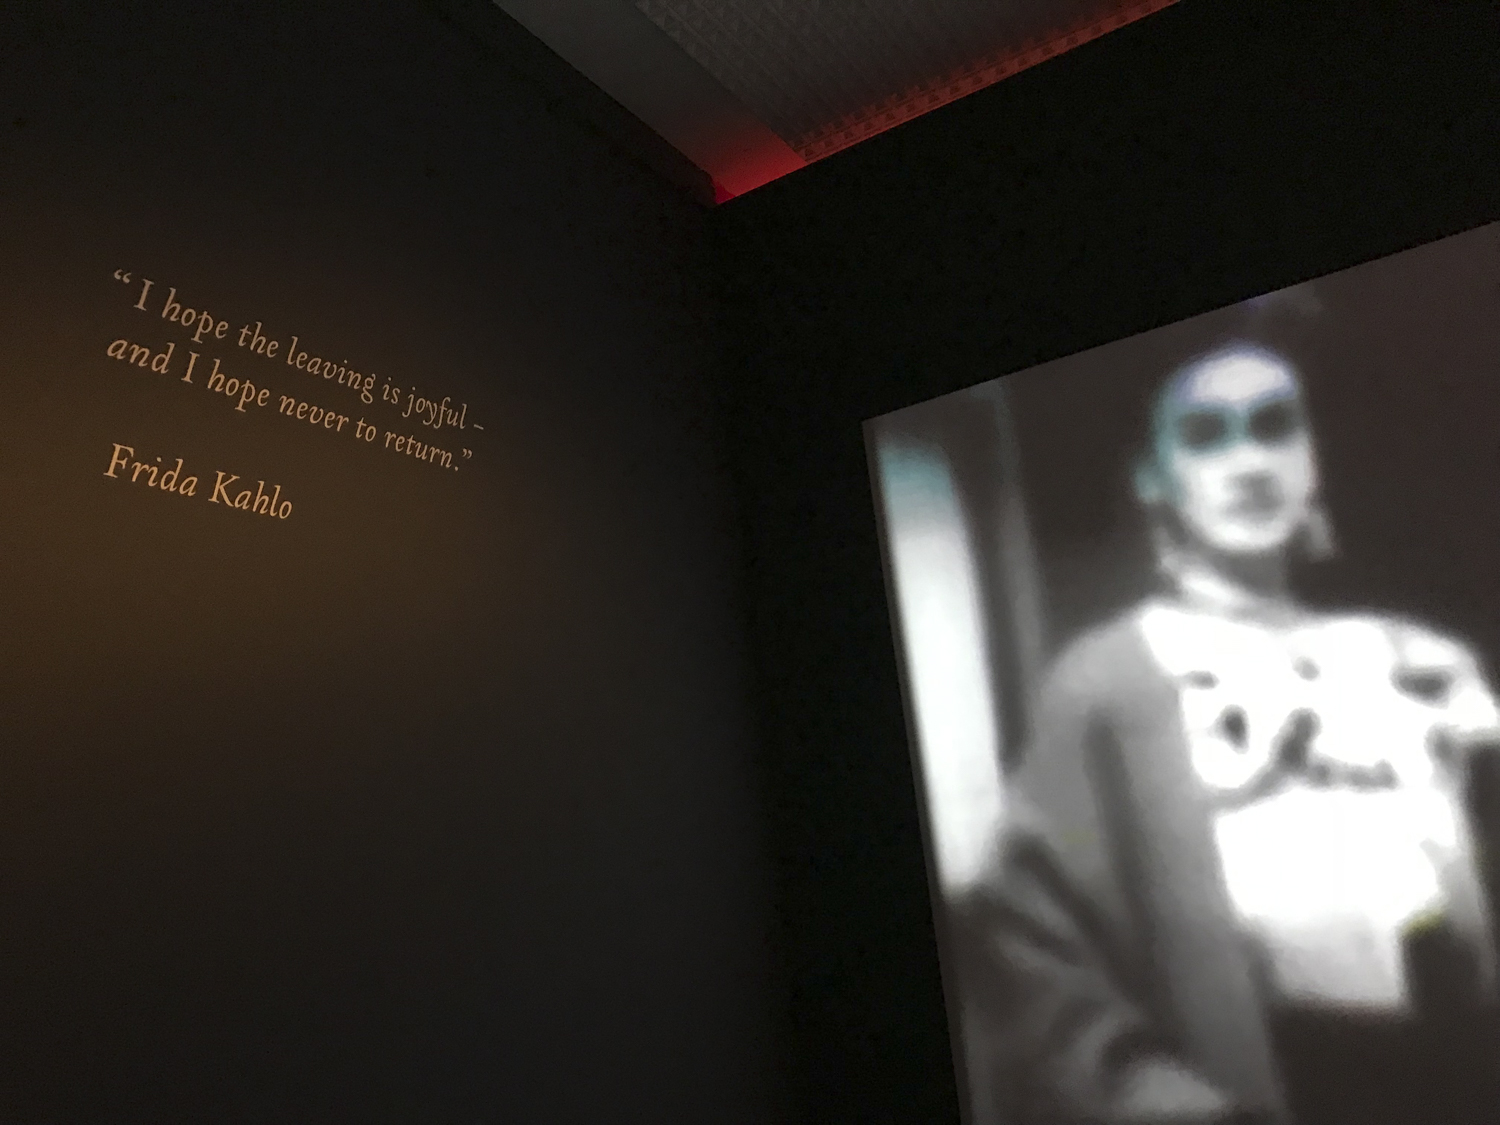 Last words & video in the exhibit